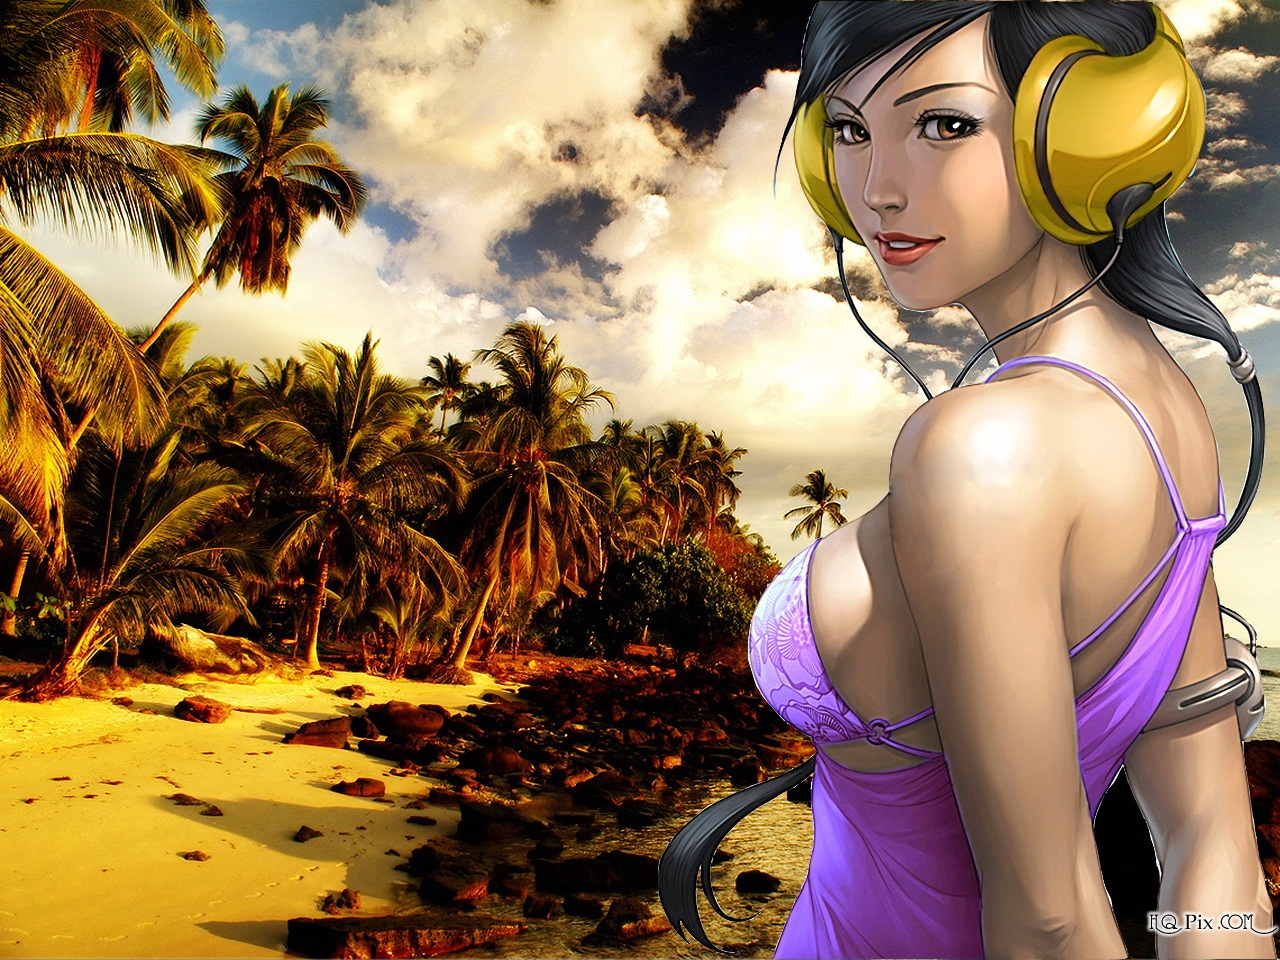 3d girls wallpapers world amazing wallpapers hot for Hot wallpapers world